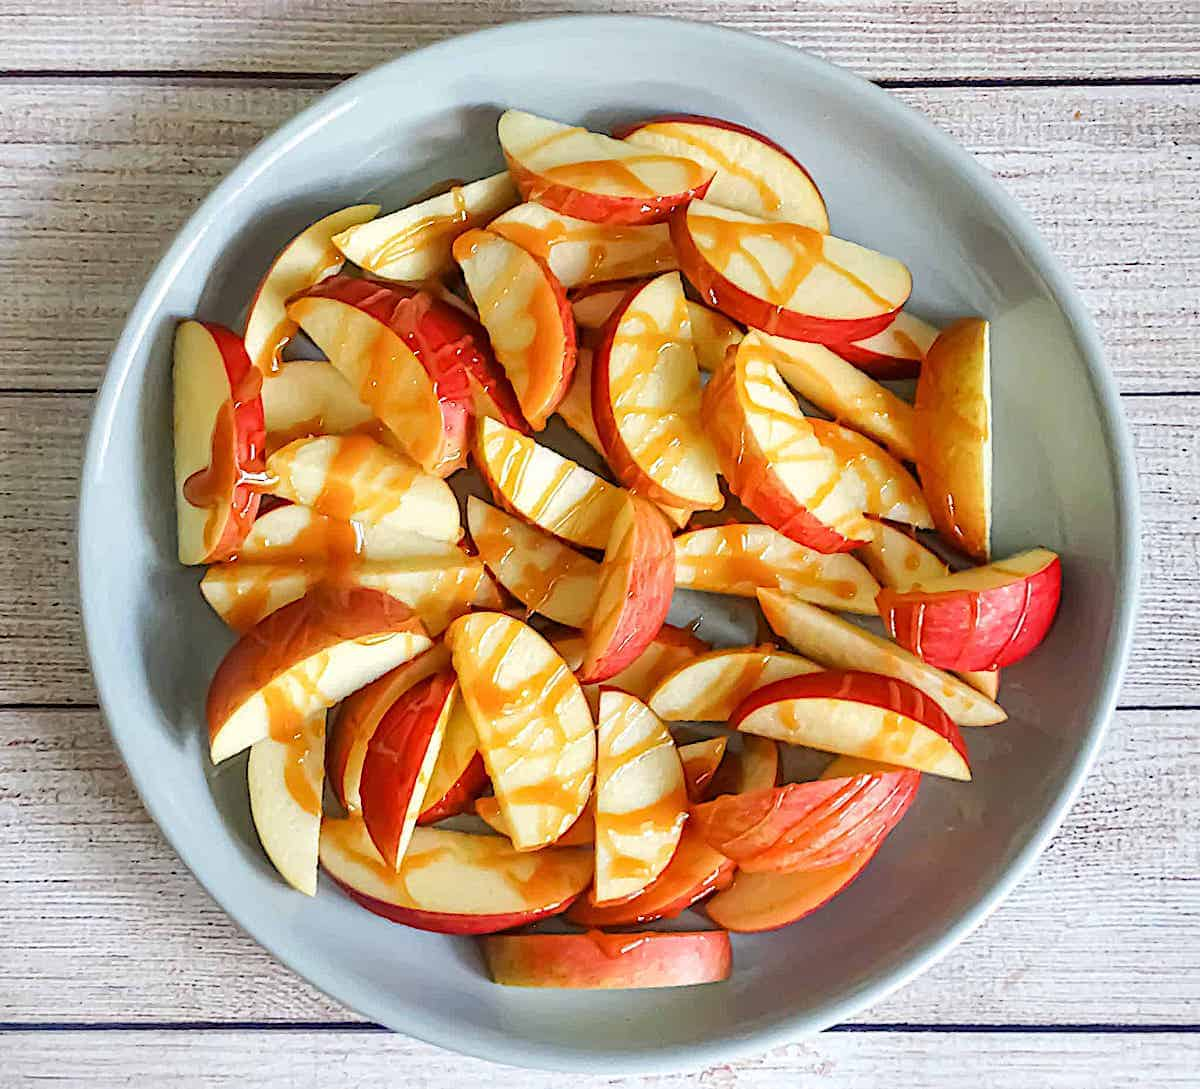 sliced apples topped with caramel on a grey plate